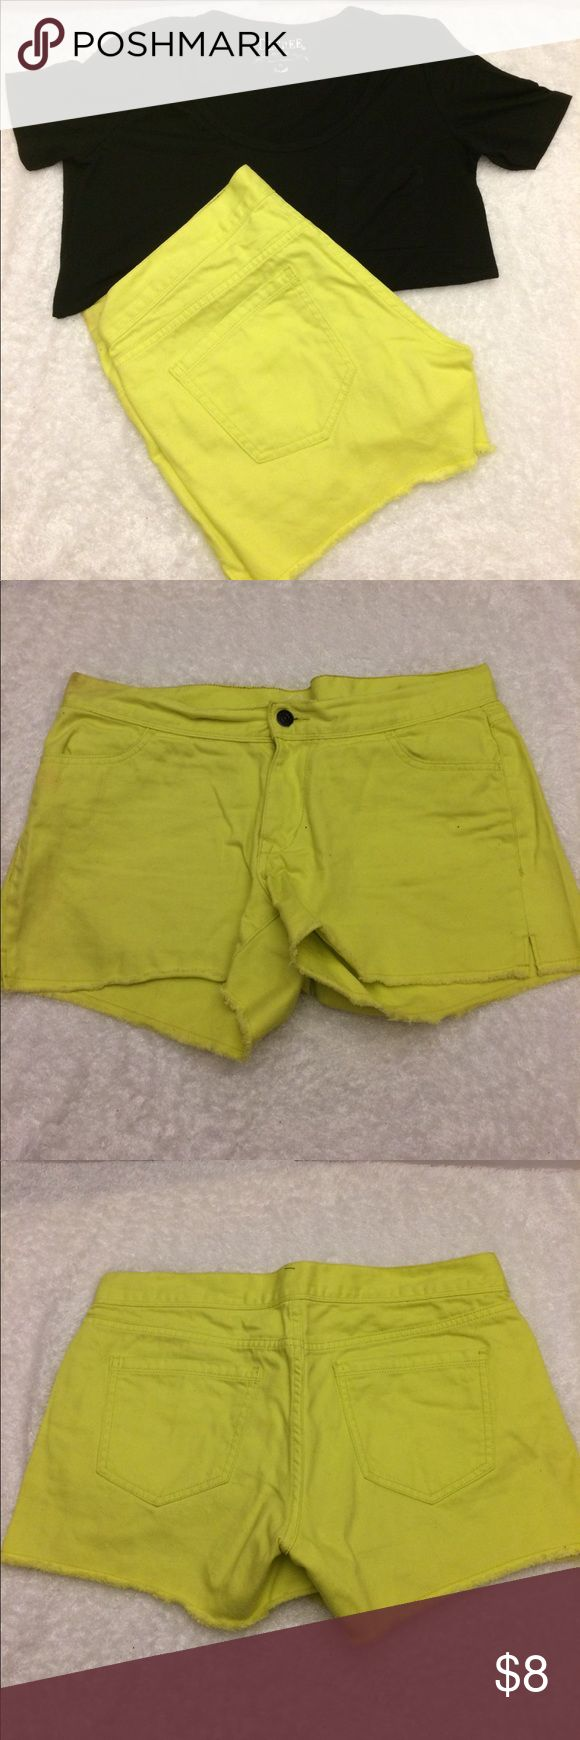 Neon yellow jean shorts Old Navy neon yellow Jean shorts in size 10. Slight discoloration/stain (see picture).  Could use a good washing with stain remover. Old Navy Shorts Jean Shorts